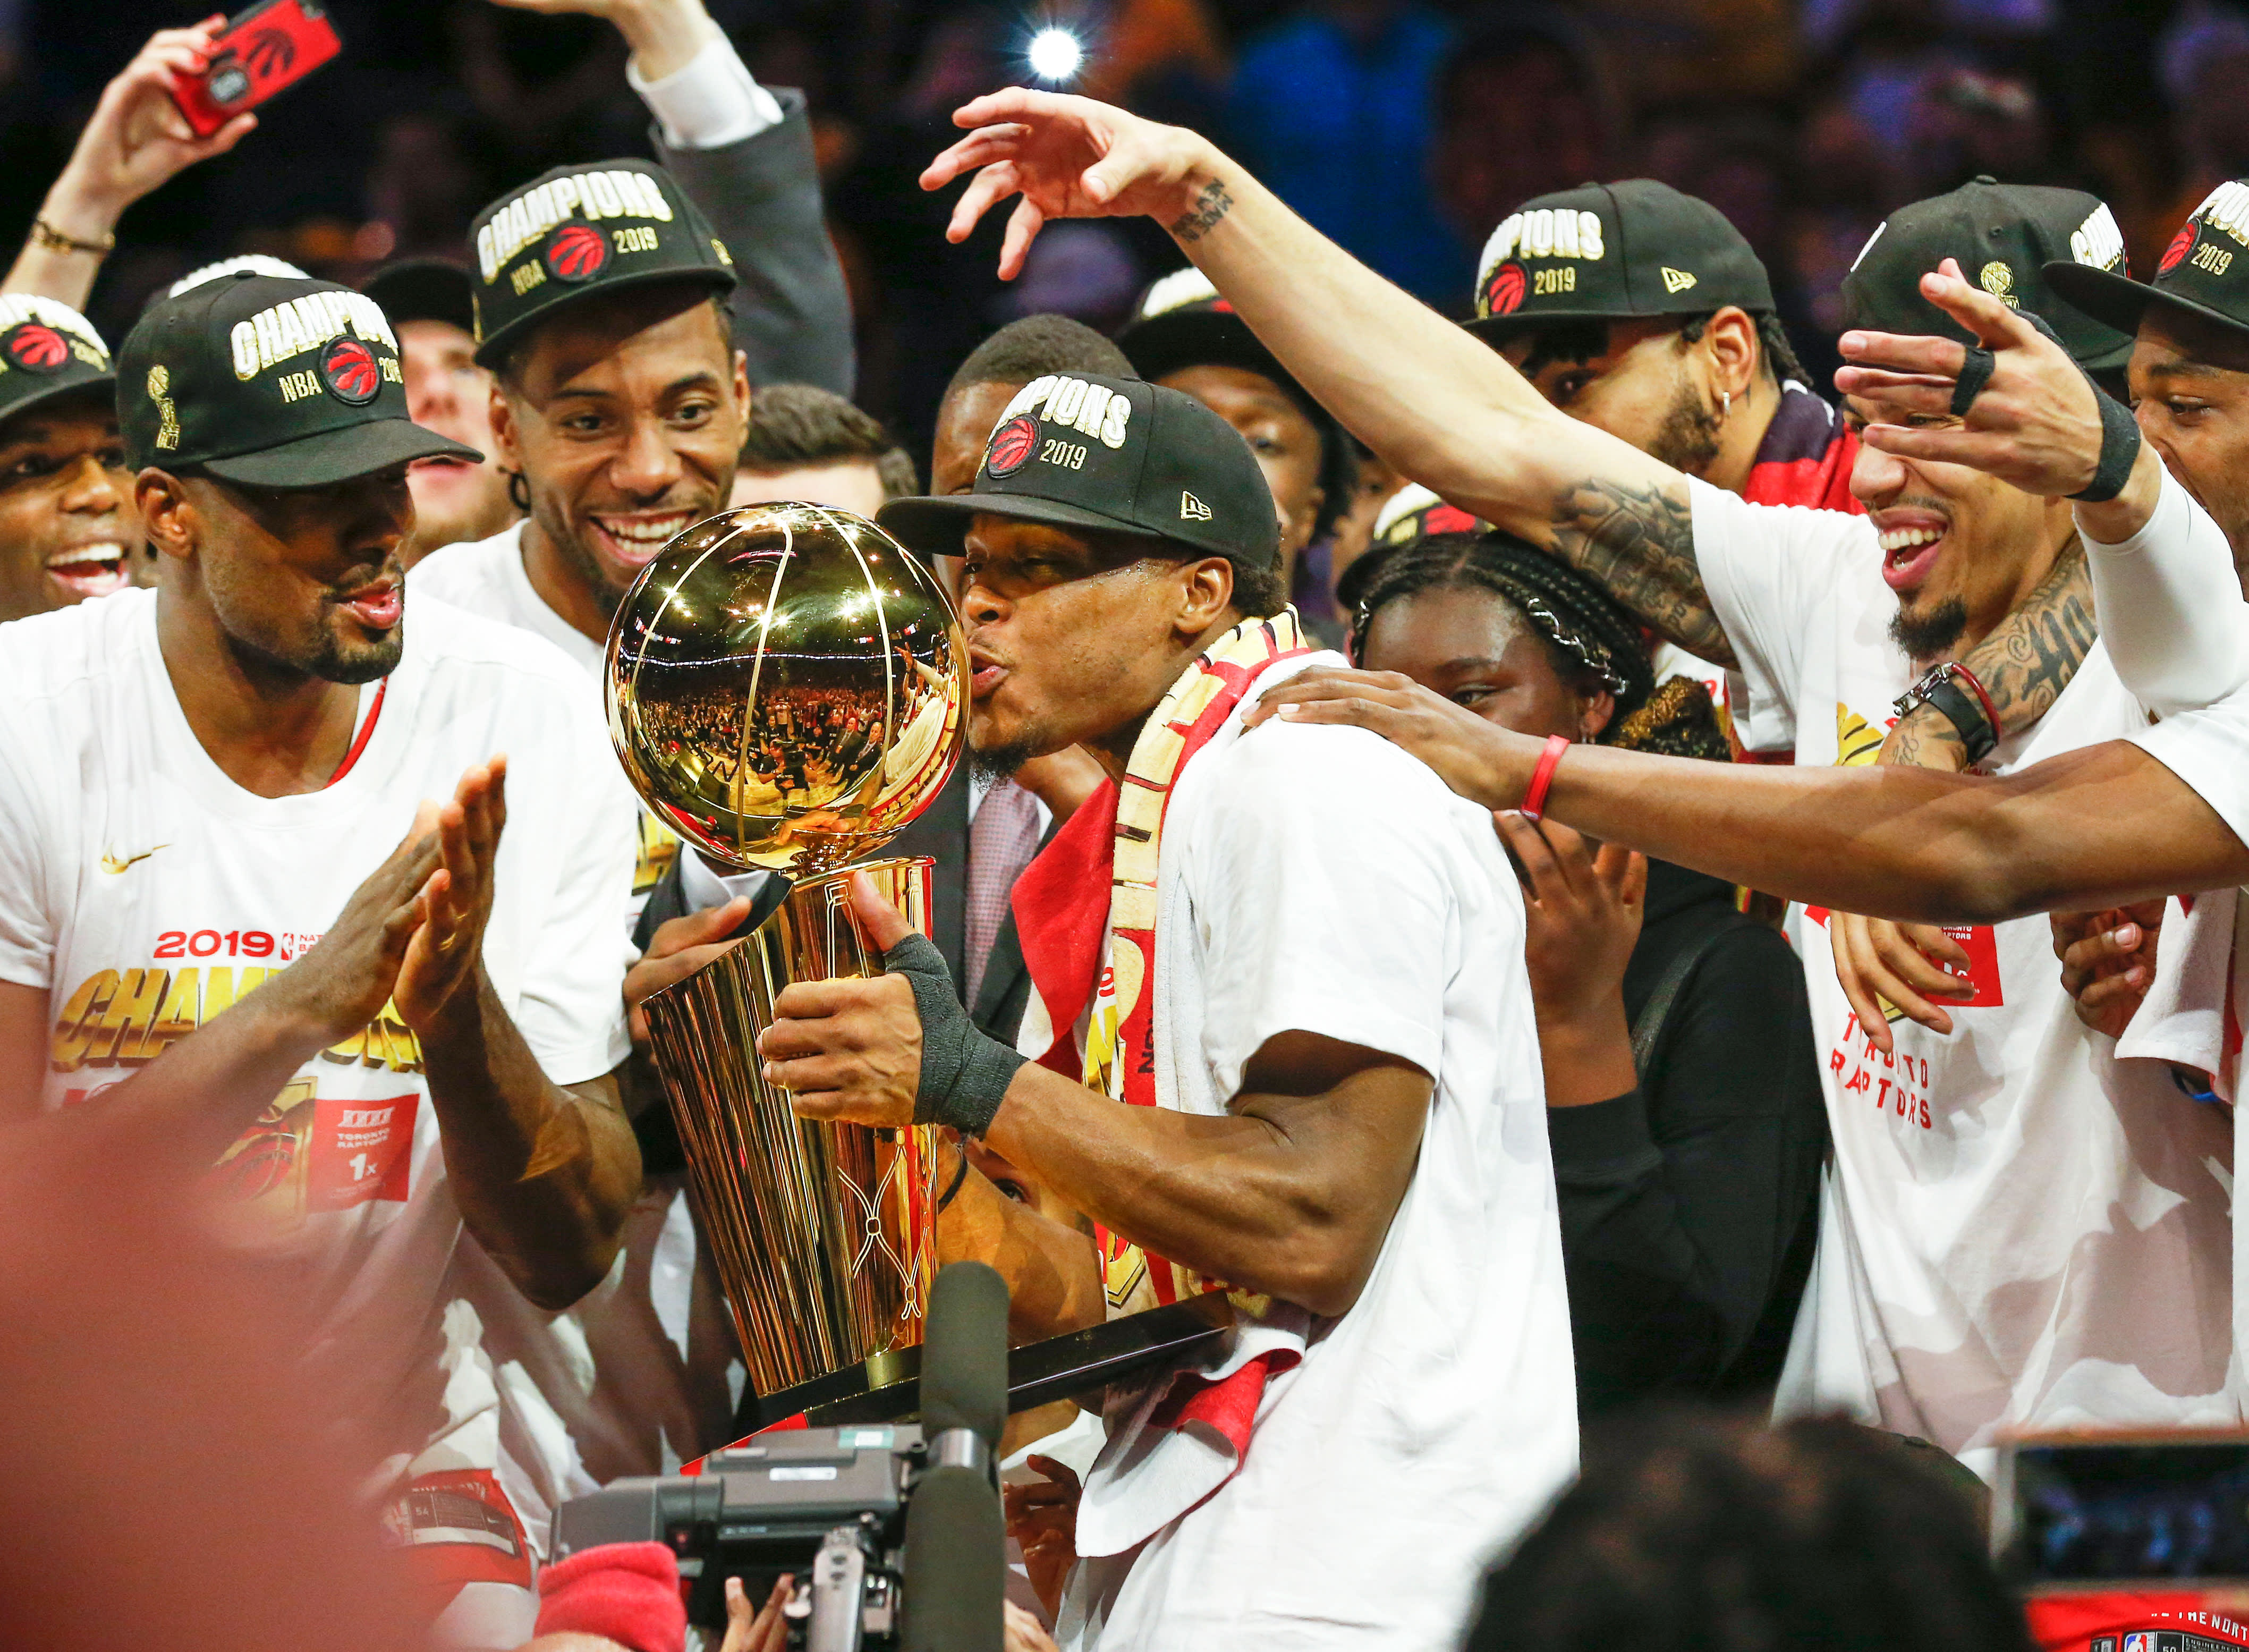 Toronto Raptors beat Golden State Warriors to win first NBA title